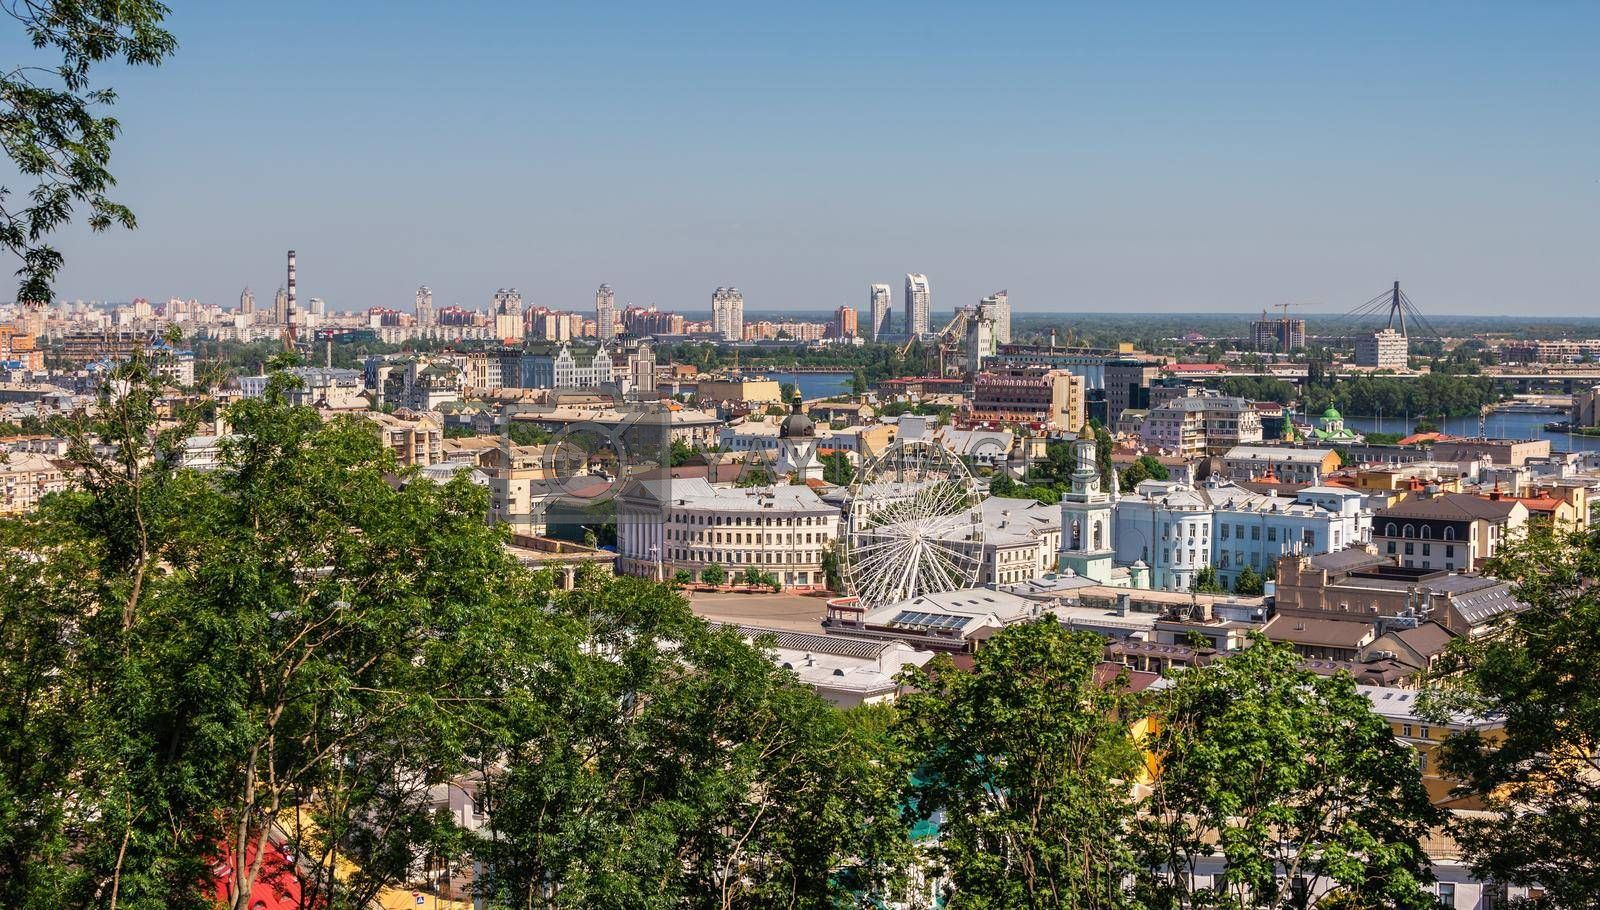 Kyiv, Ukraine 07.11.2020. Top view of Kiev from the side of the Andriyivskyy Descent, Ukraine, on a sunny summer morning